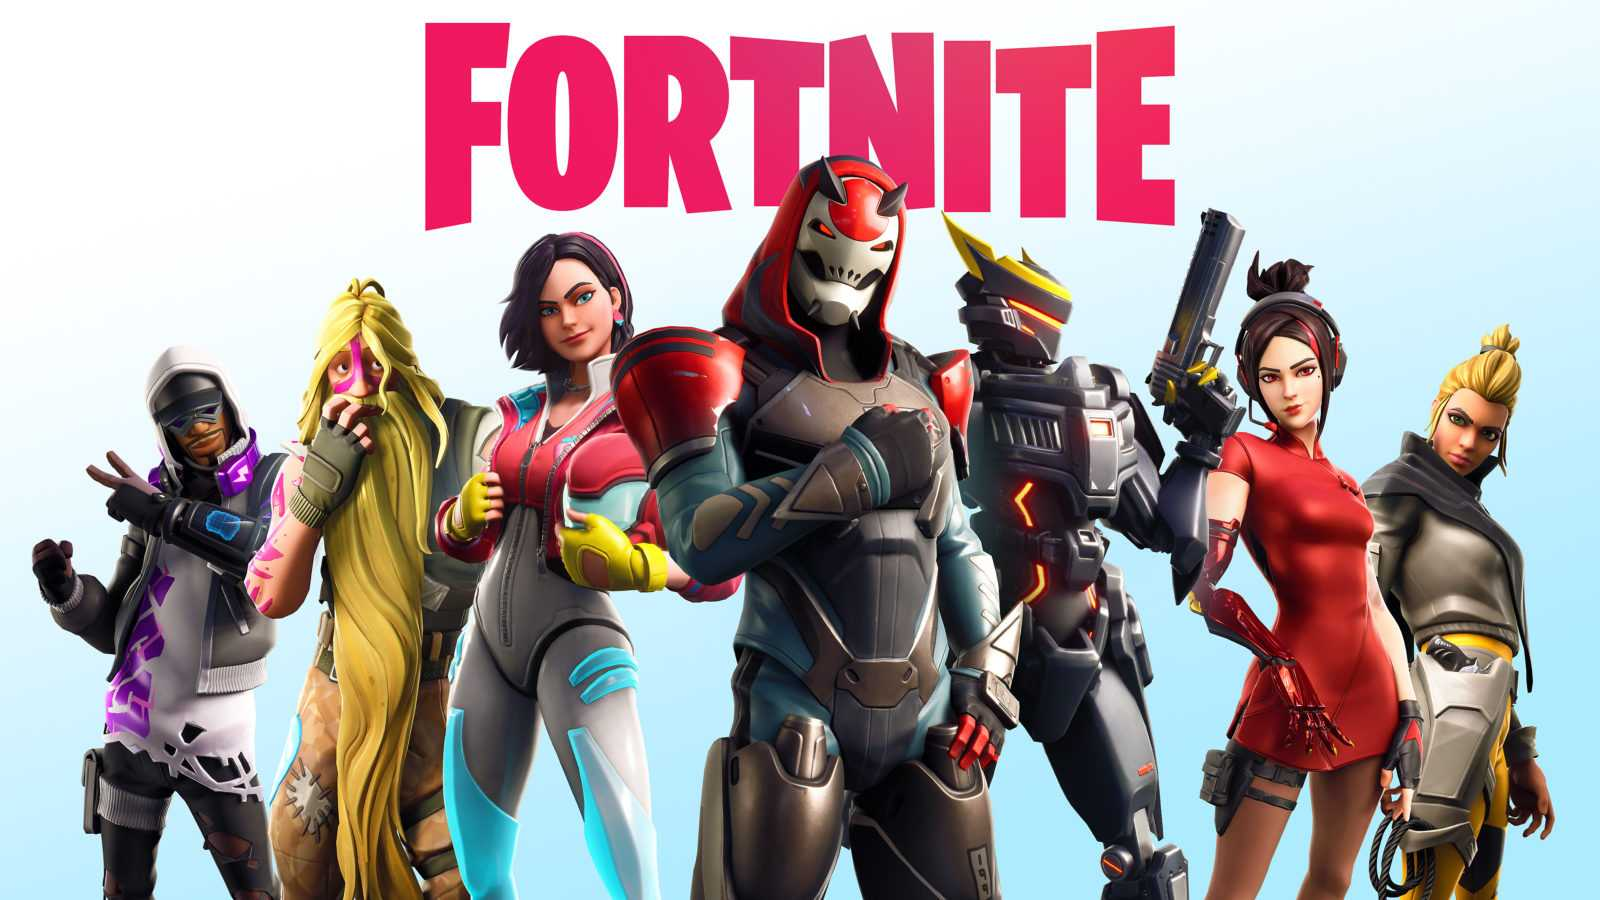 Top 10 facts about Fortnite Battle Royale